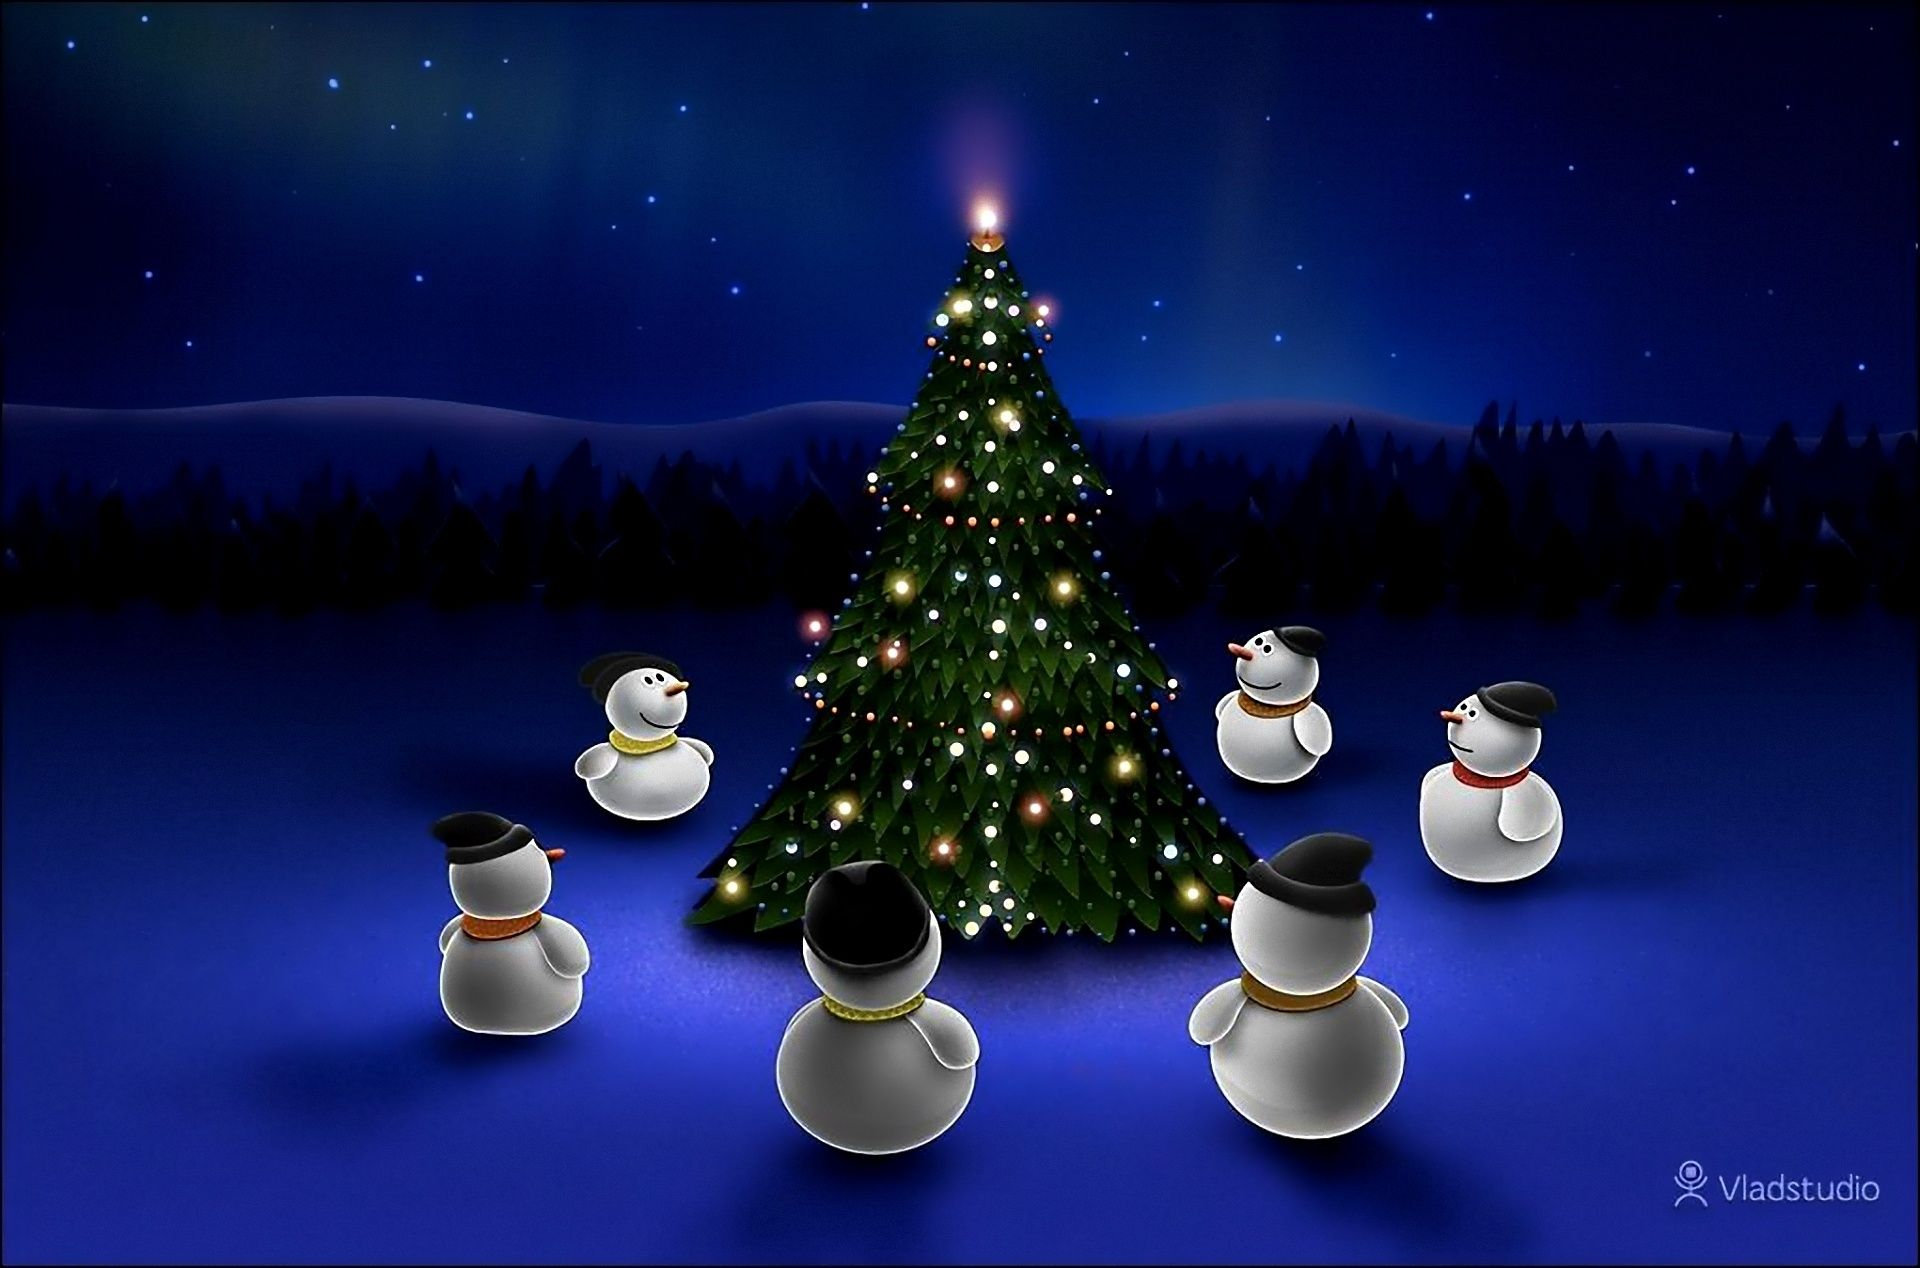 Snowmen, Trees, garland, Toys, roundelay - HD wallpaper desktop backgrounds